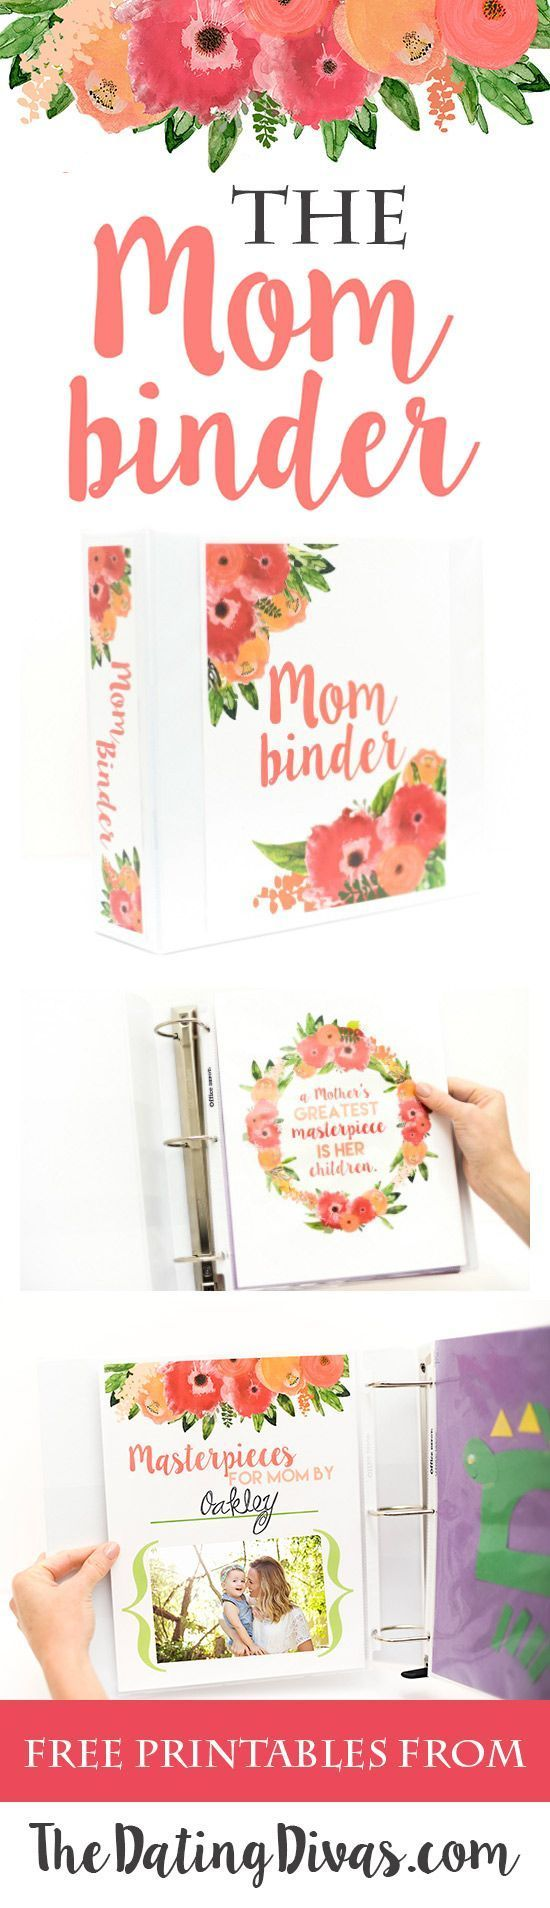 FREE printables to make your own Mom Binder. The PERFECT way to organize your children's artwork and love notes. Makes a darling Mother's Day gift too!